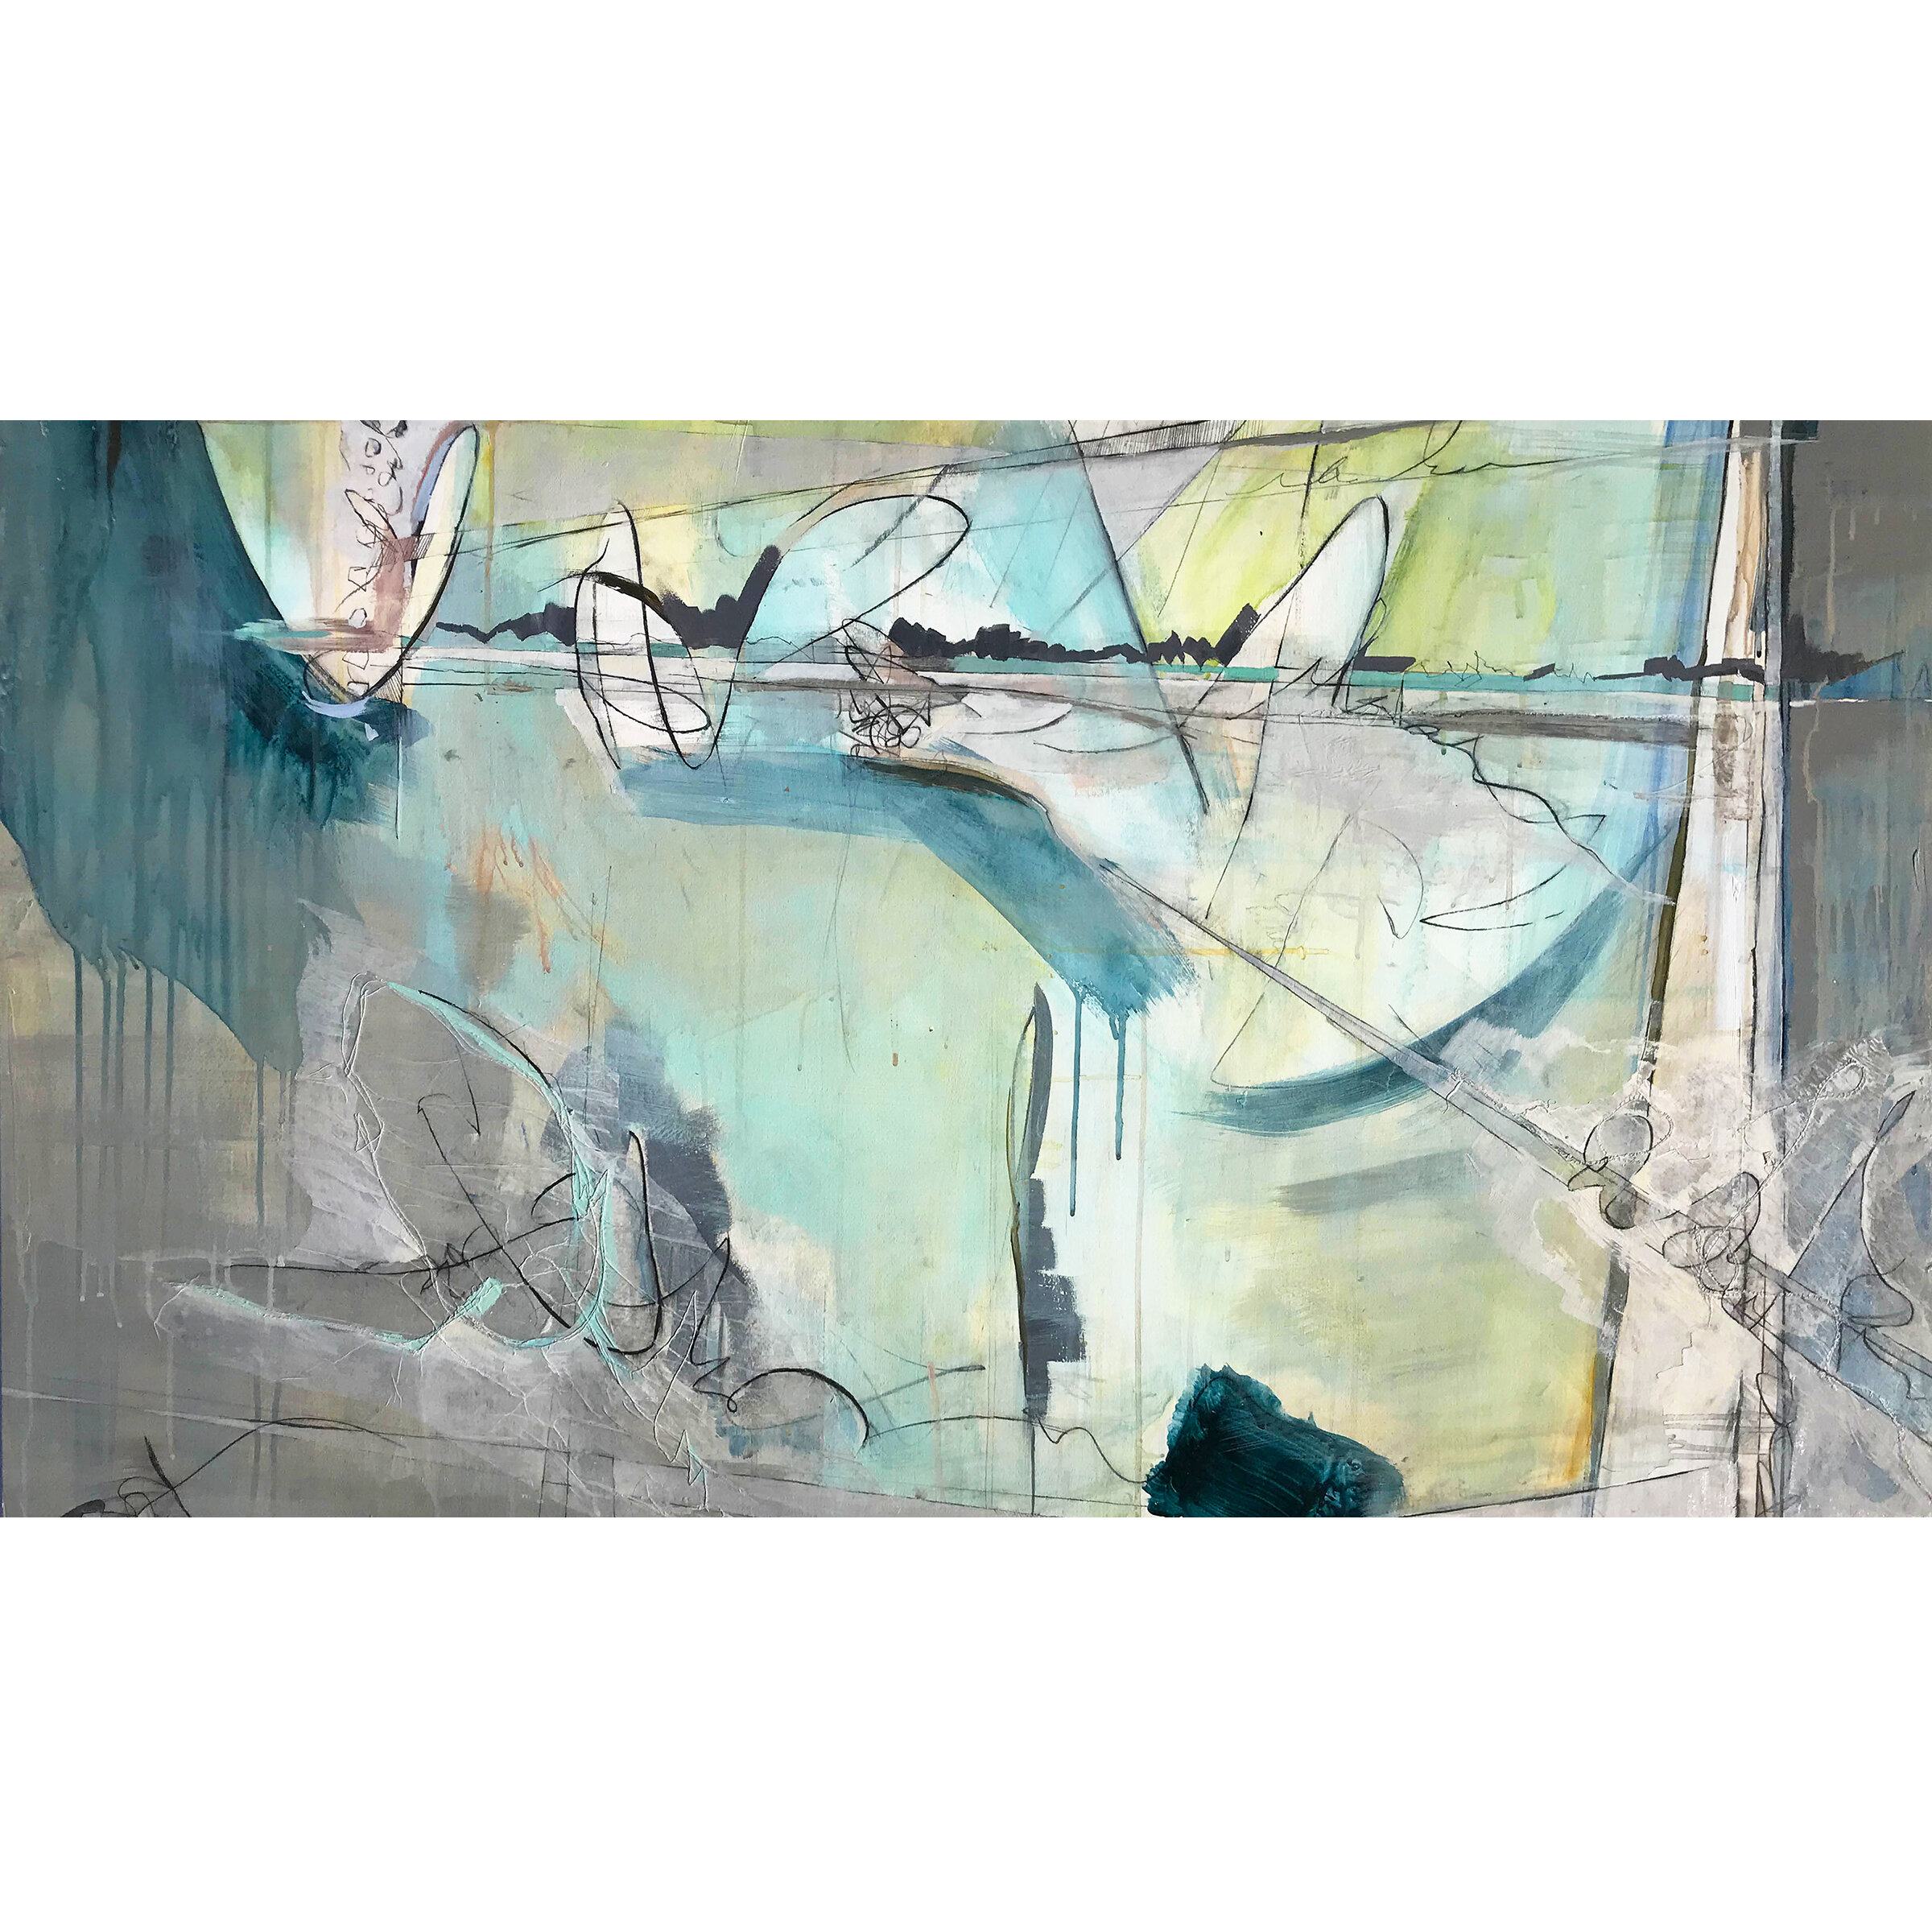 Abstract painting and sewing dominated blue, green and gray color with lines sewed on the tracing paper